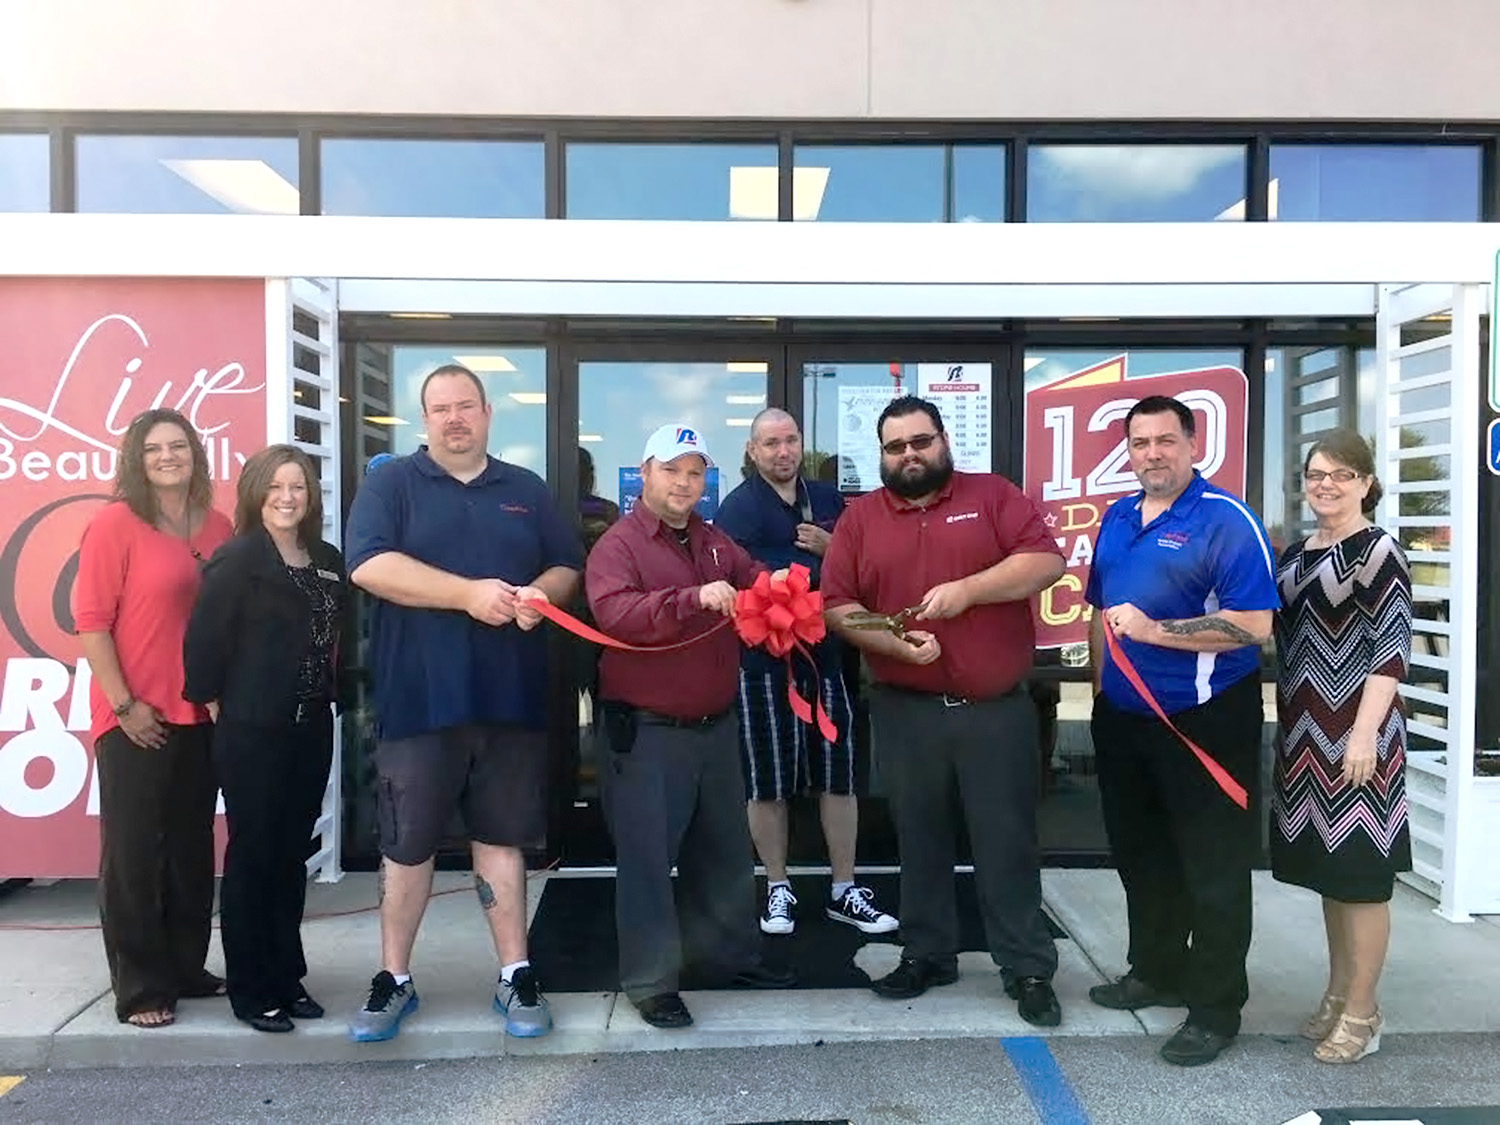 Rent One Ribbon Cutting